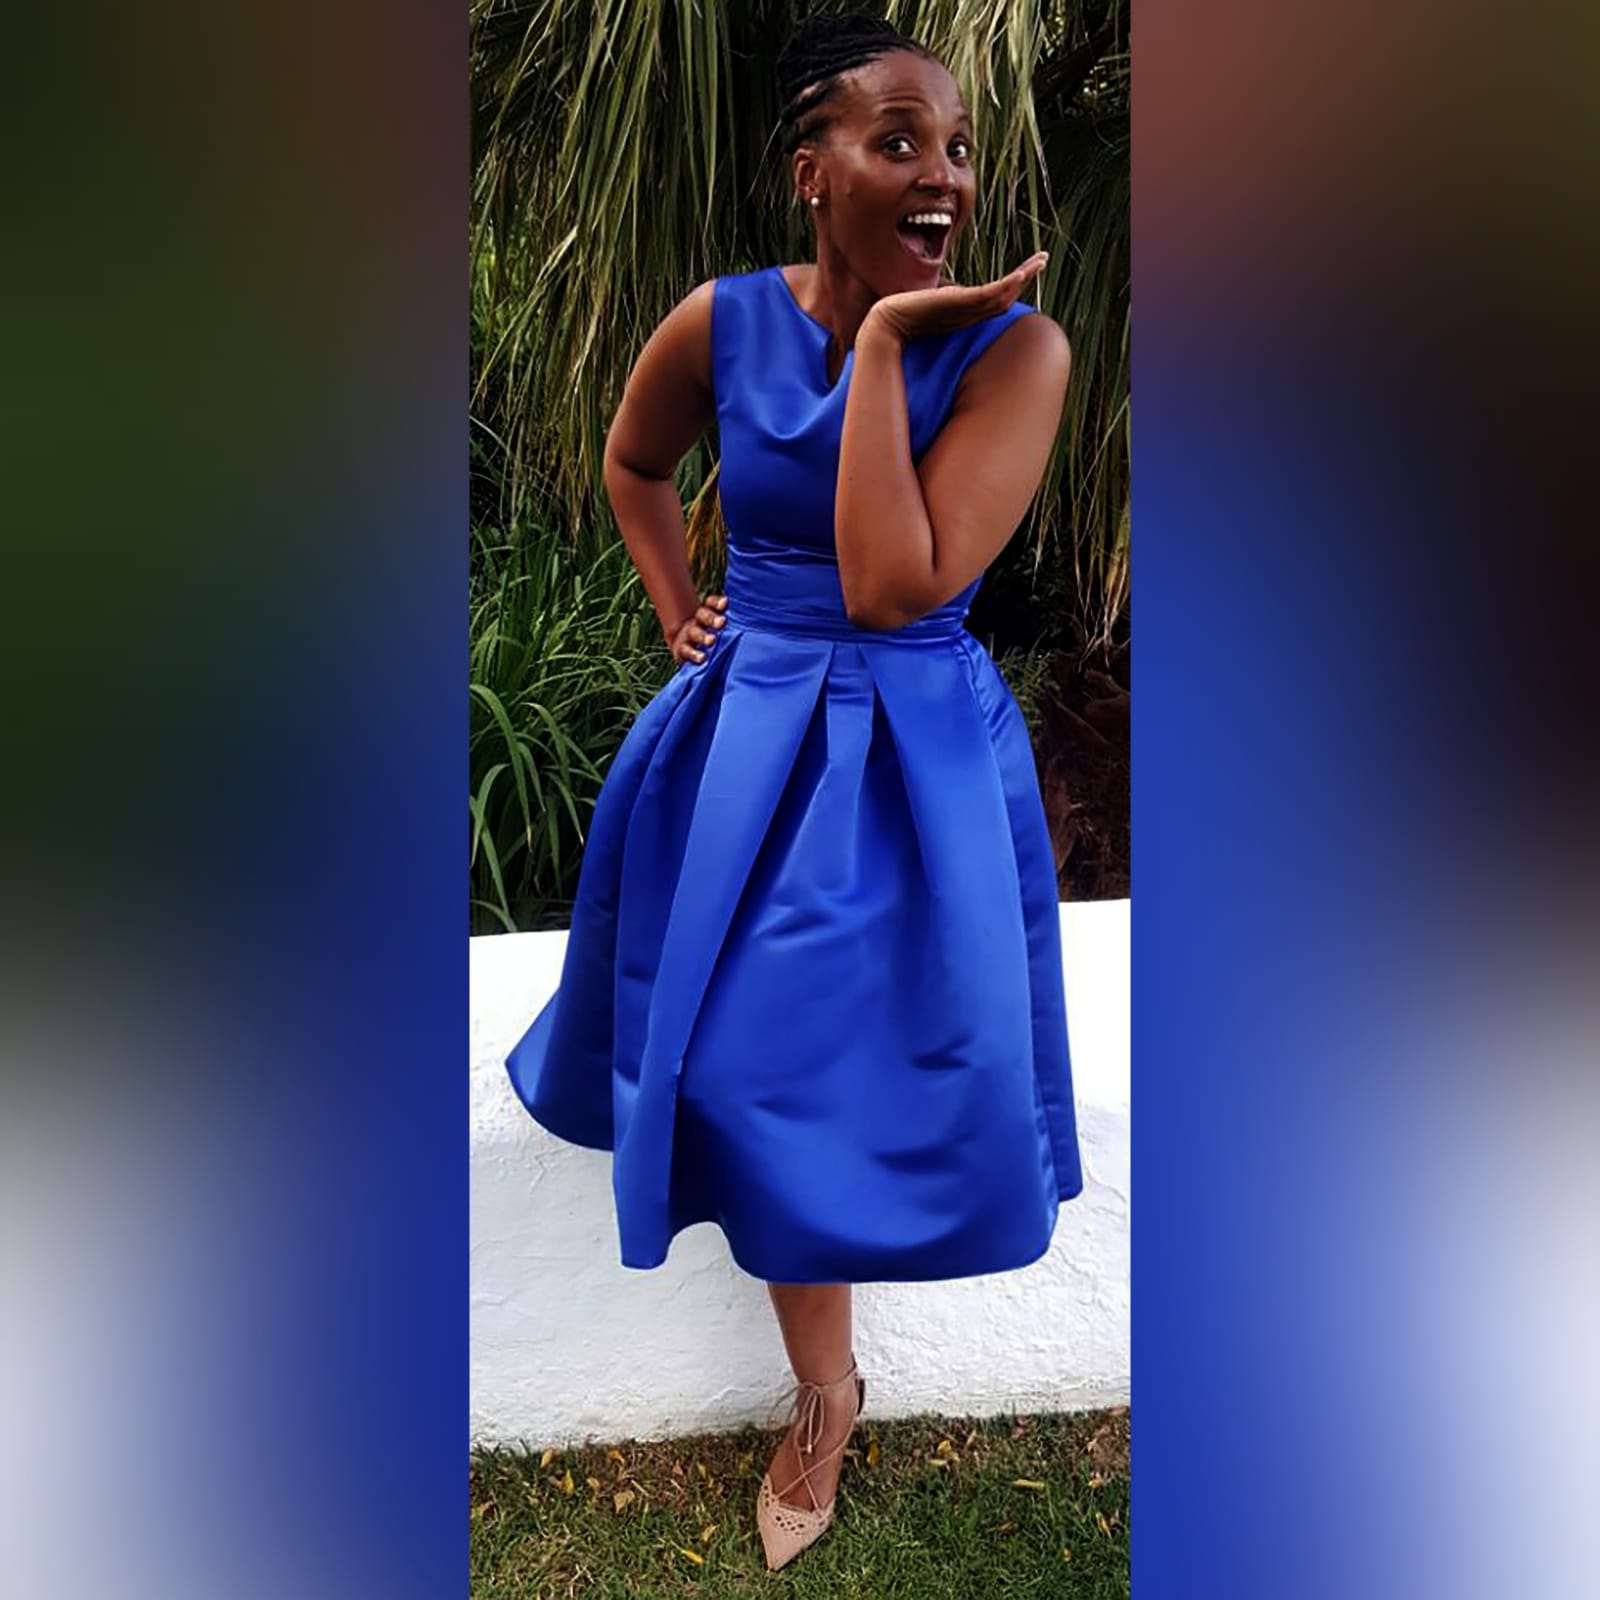 Royal blue 3/4 length pleated evening dress 1 royal blue 3/4 length pleated evening dress with a fitted bodice with a slit rounded neckline.